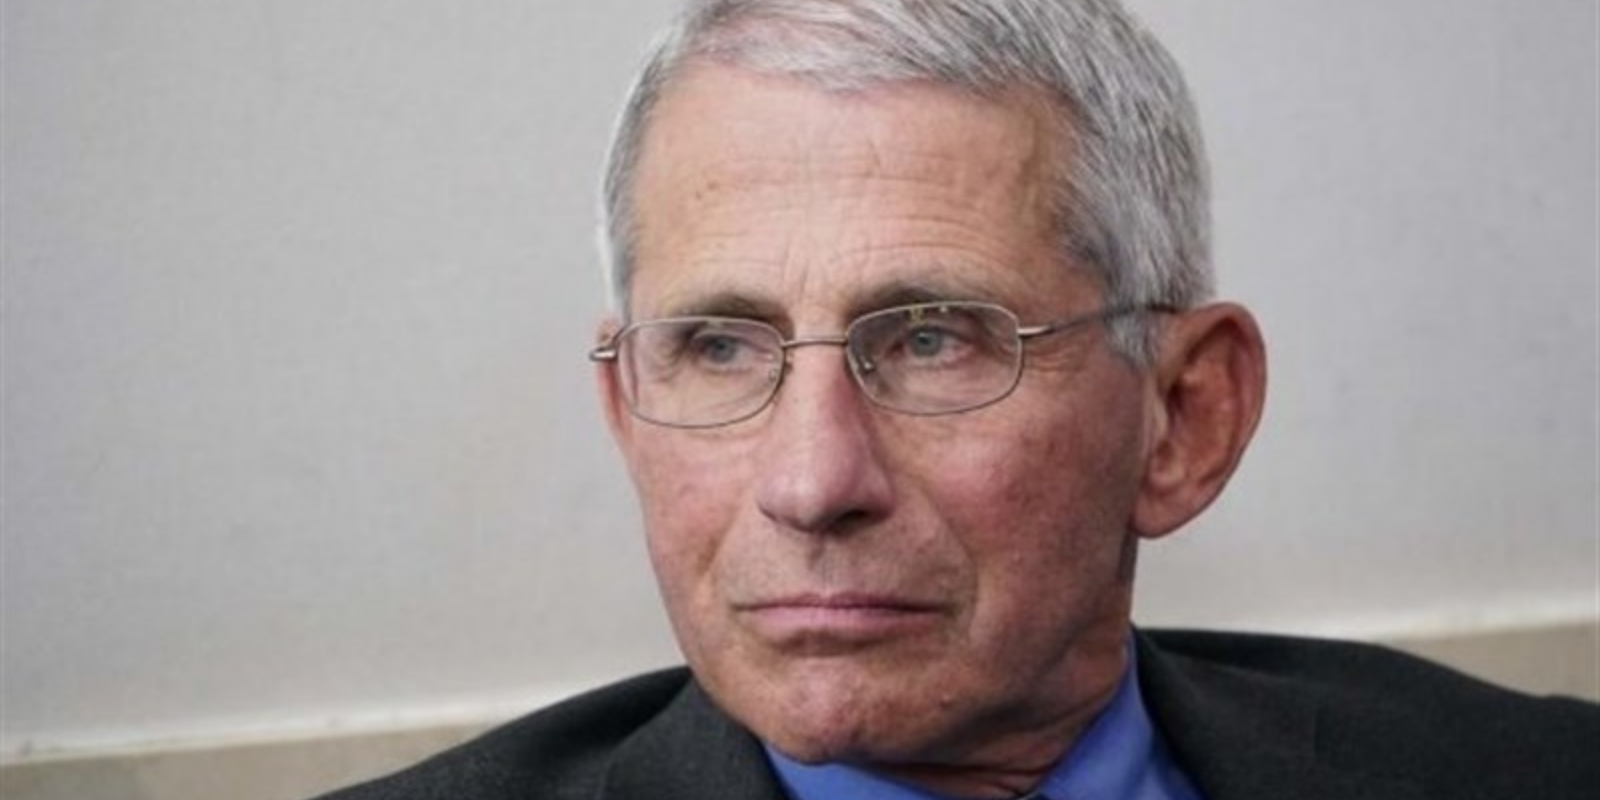 WATCH: Dr. Fauci tries to cancel Christmas for all Americans